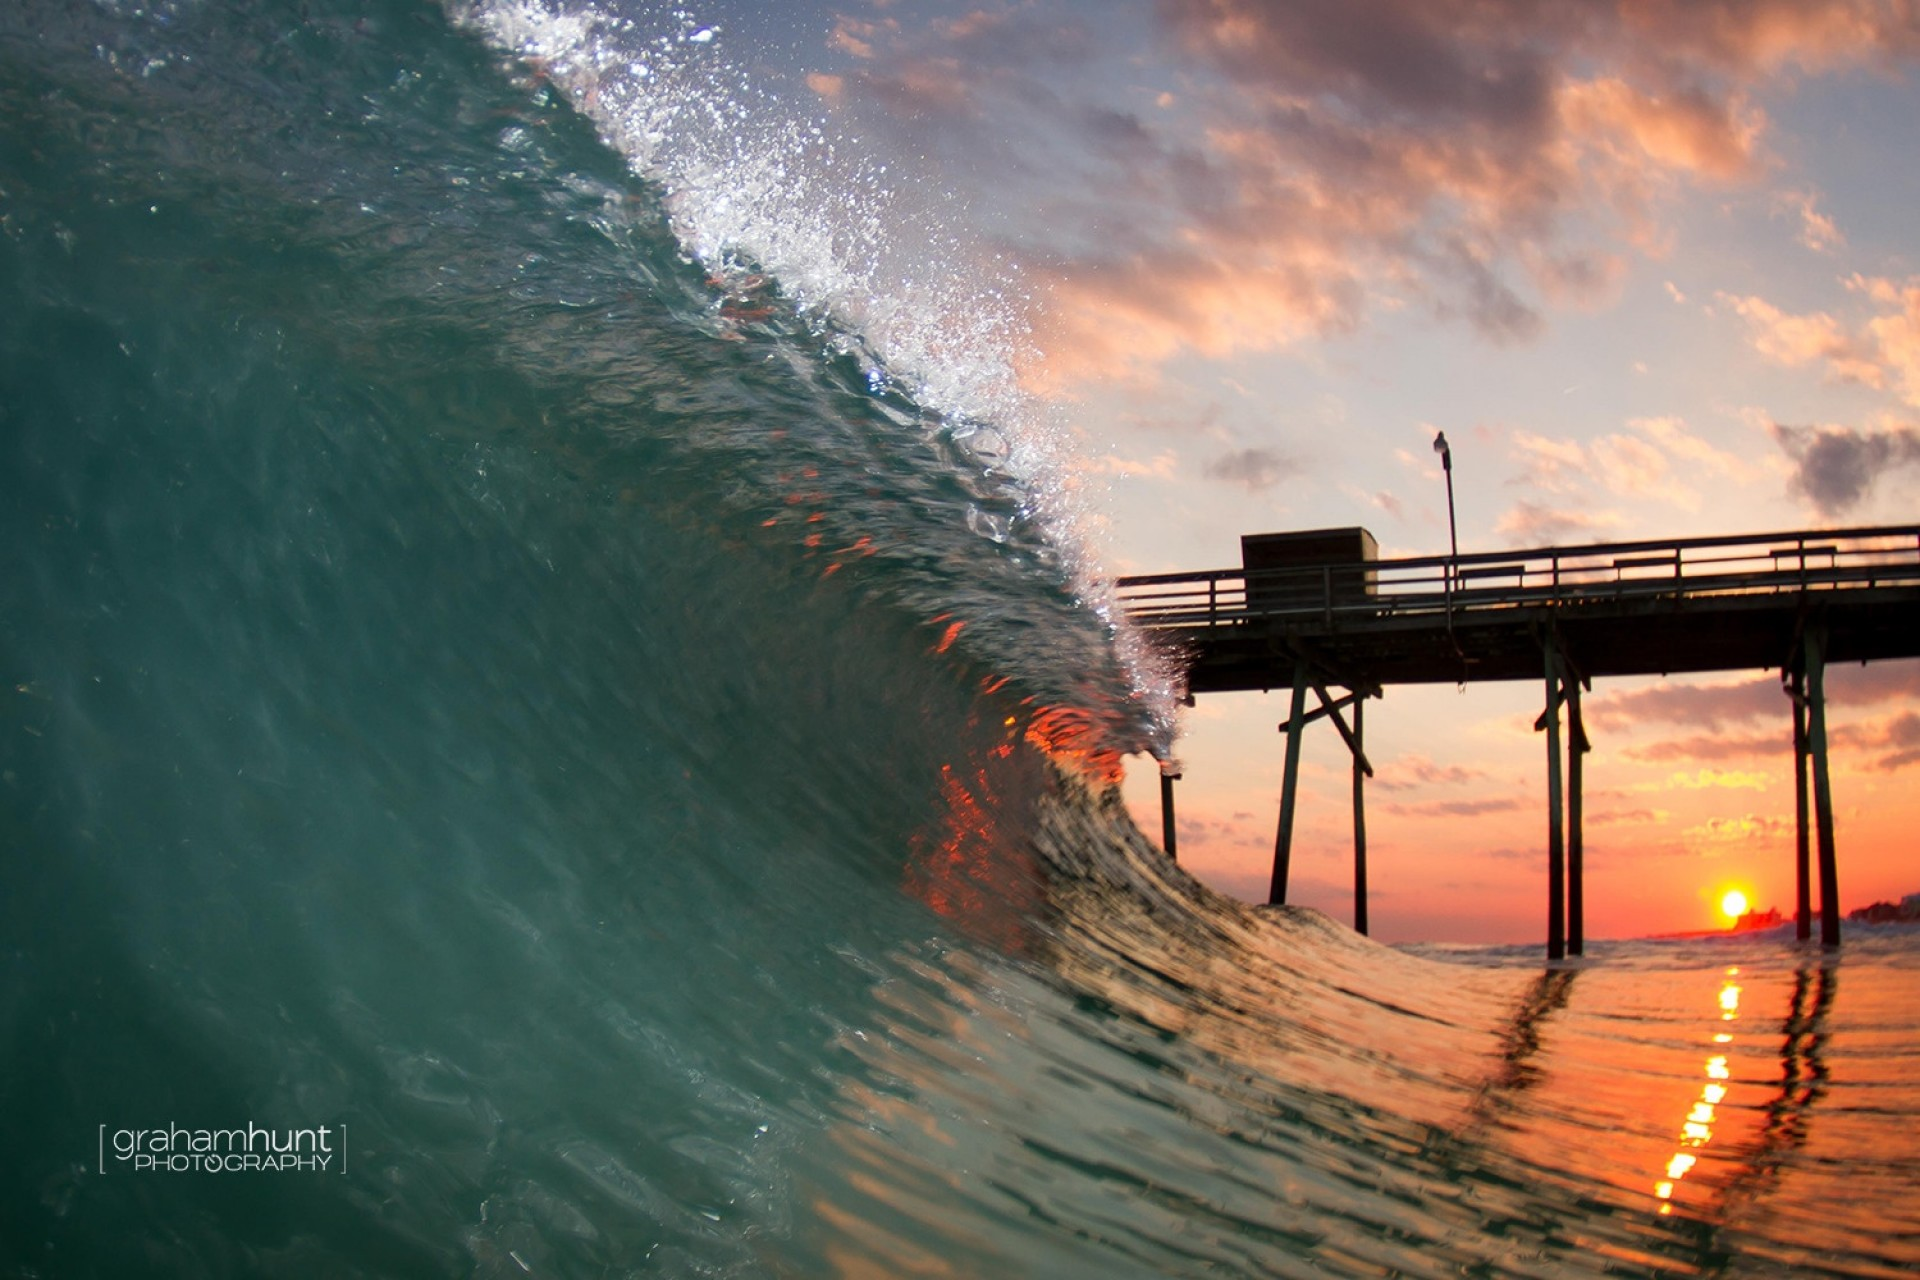 Graham Hunt Photography's photo of Bogue Pier